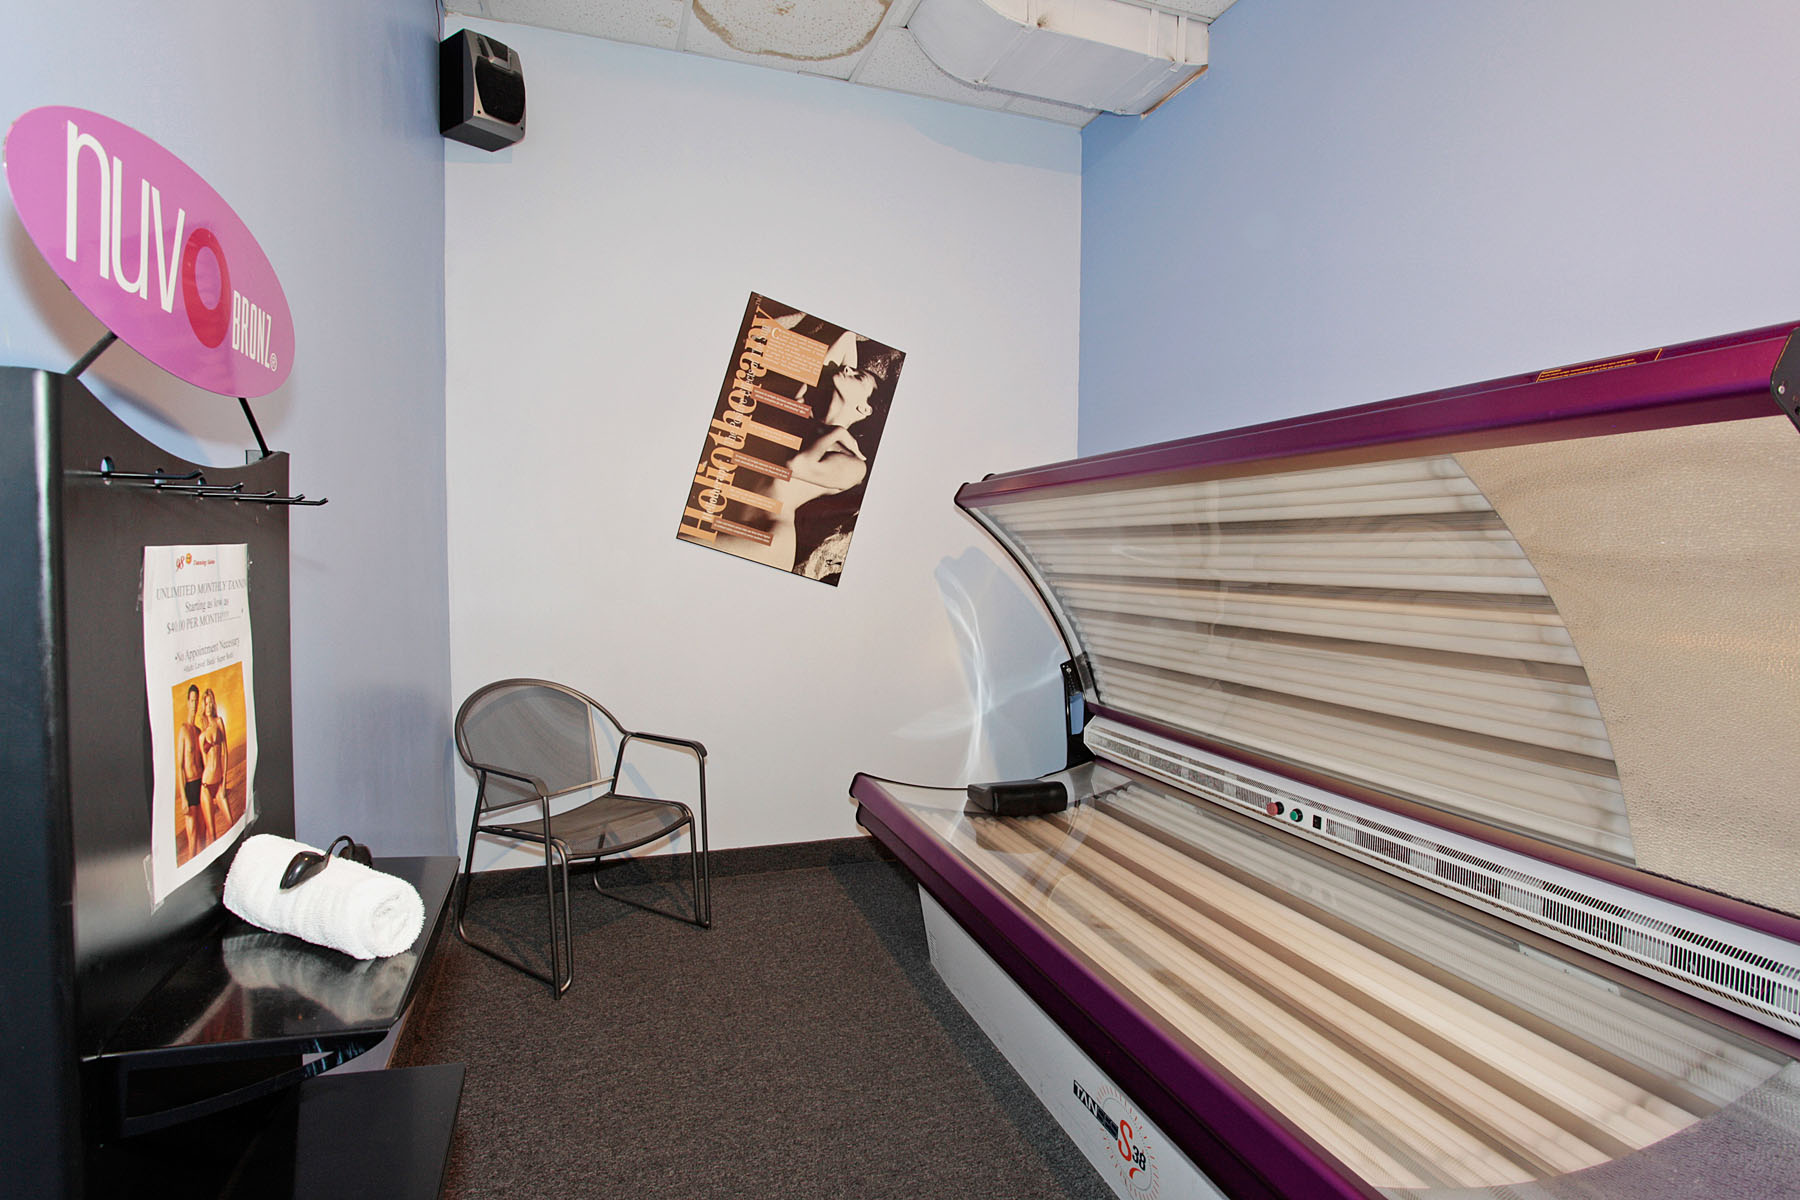 98 degrees tanning salon official virtual tour seevirtual